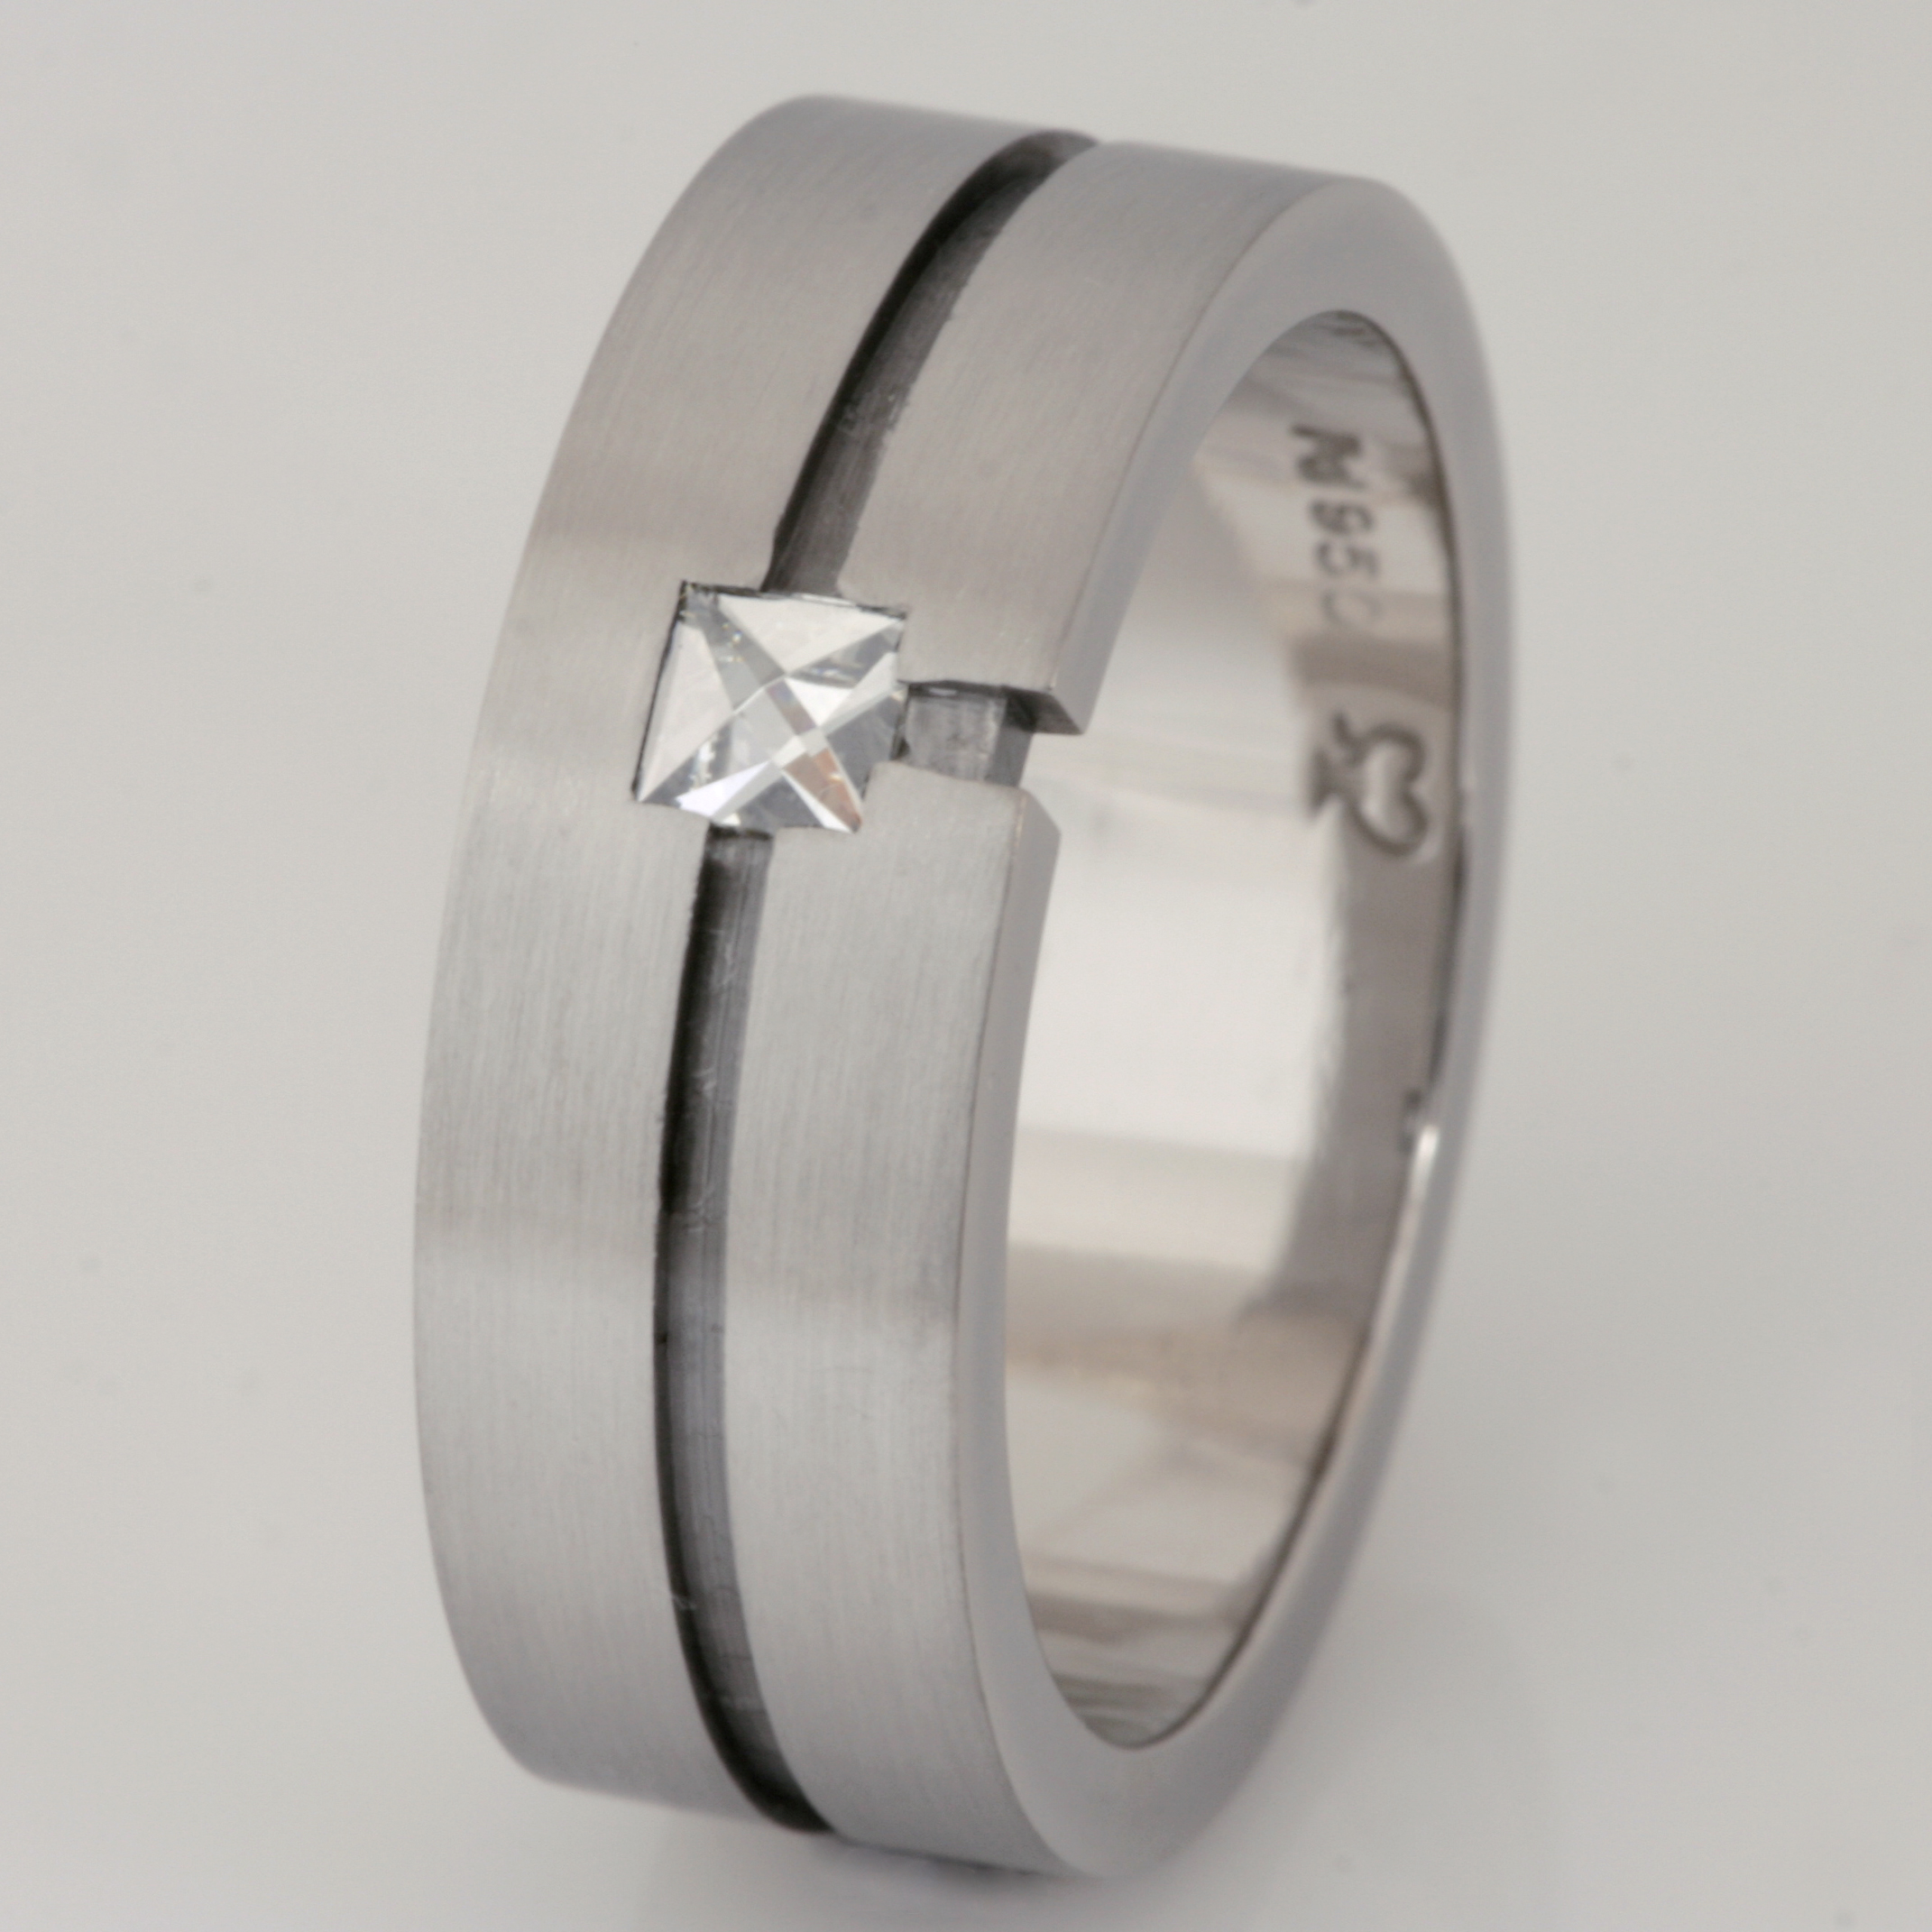 Handmade gents palladium 'Context' cut diamond wedding ring